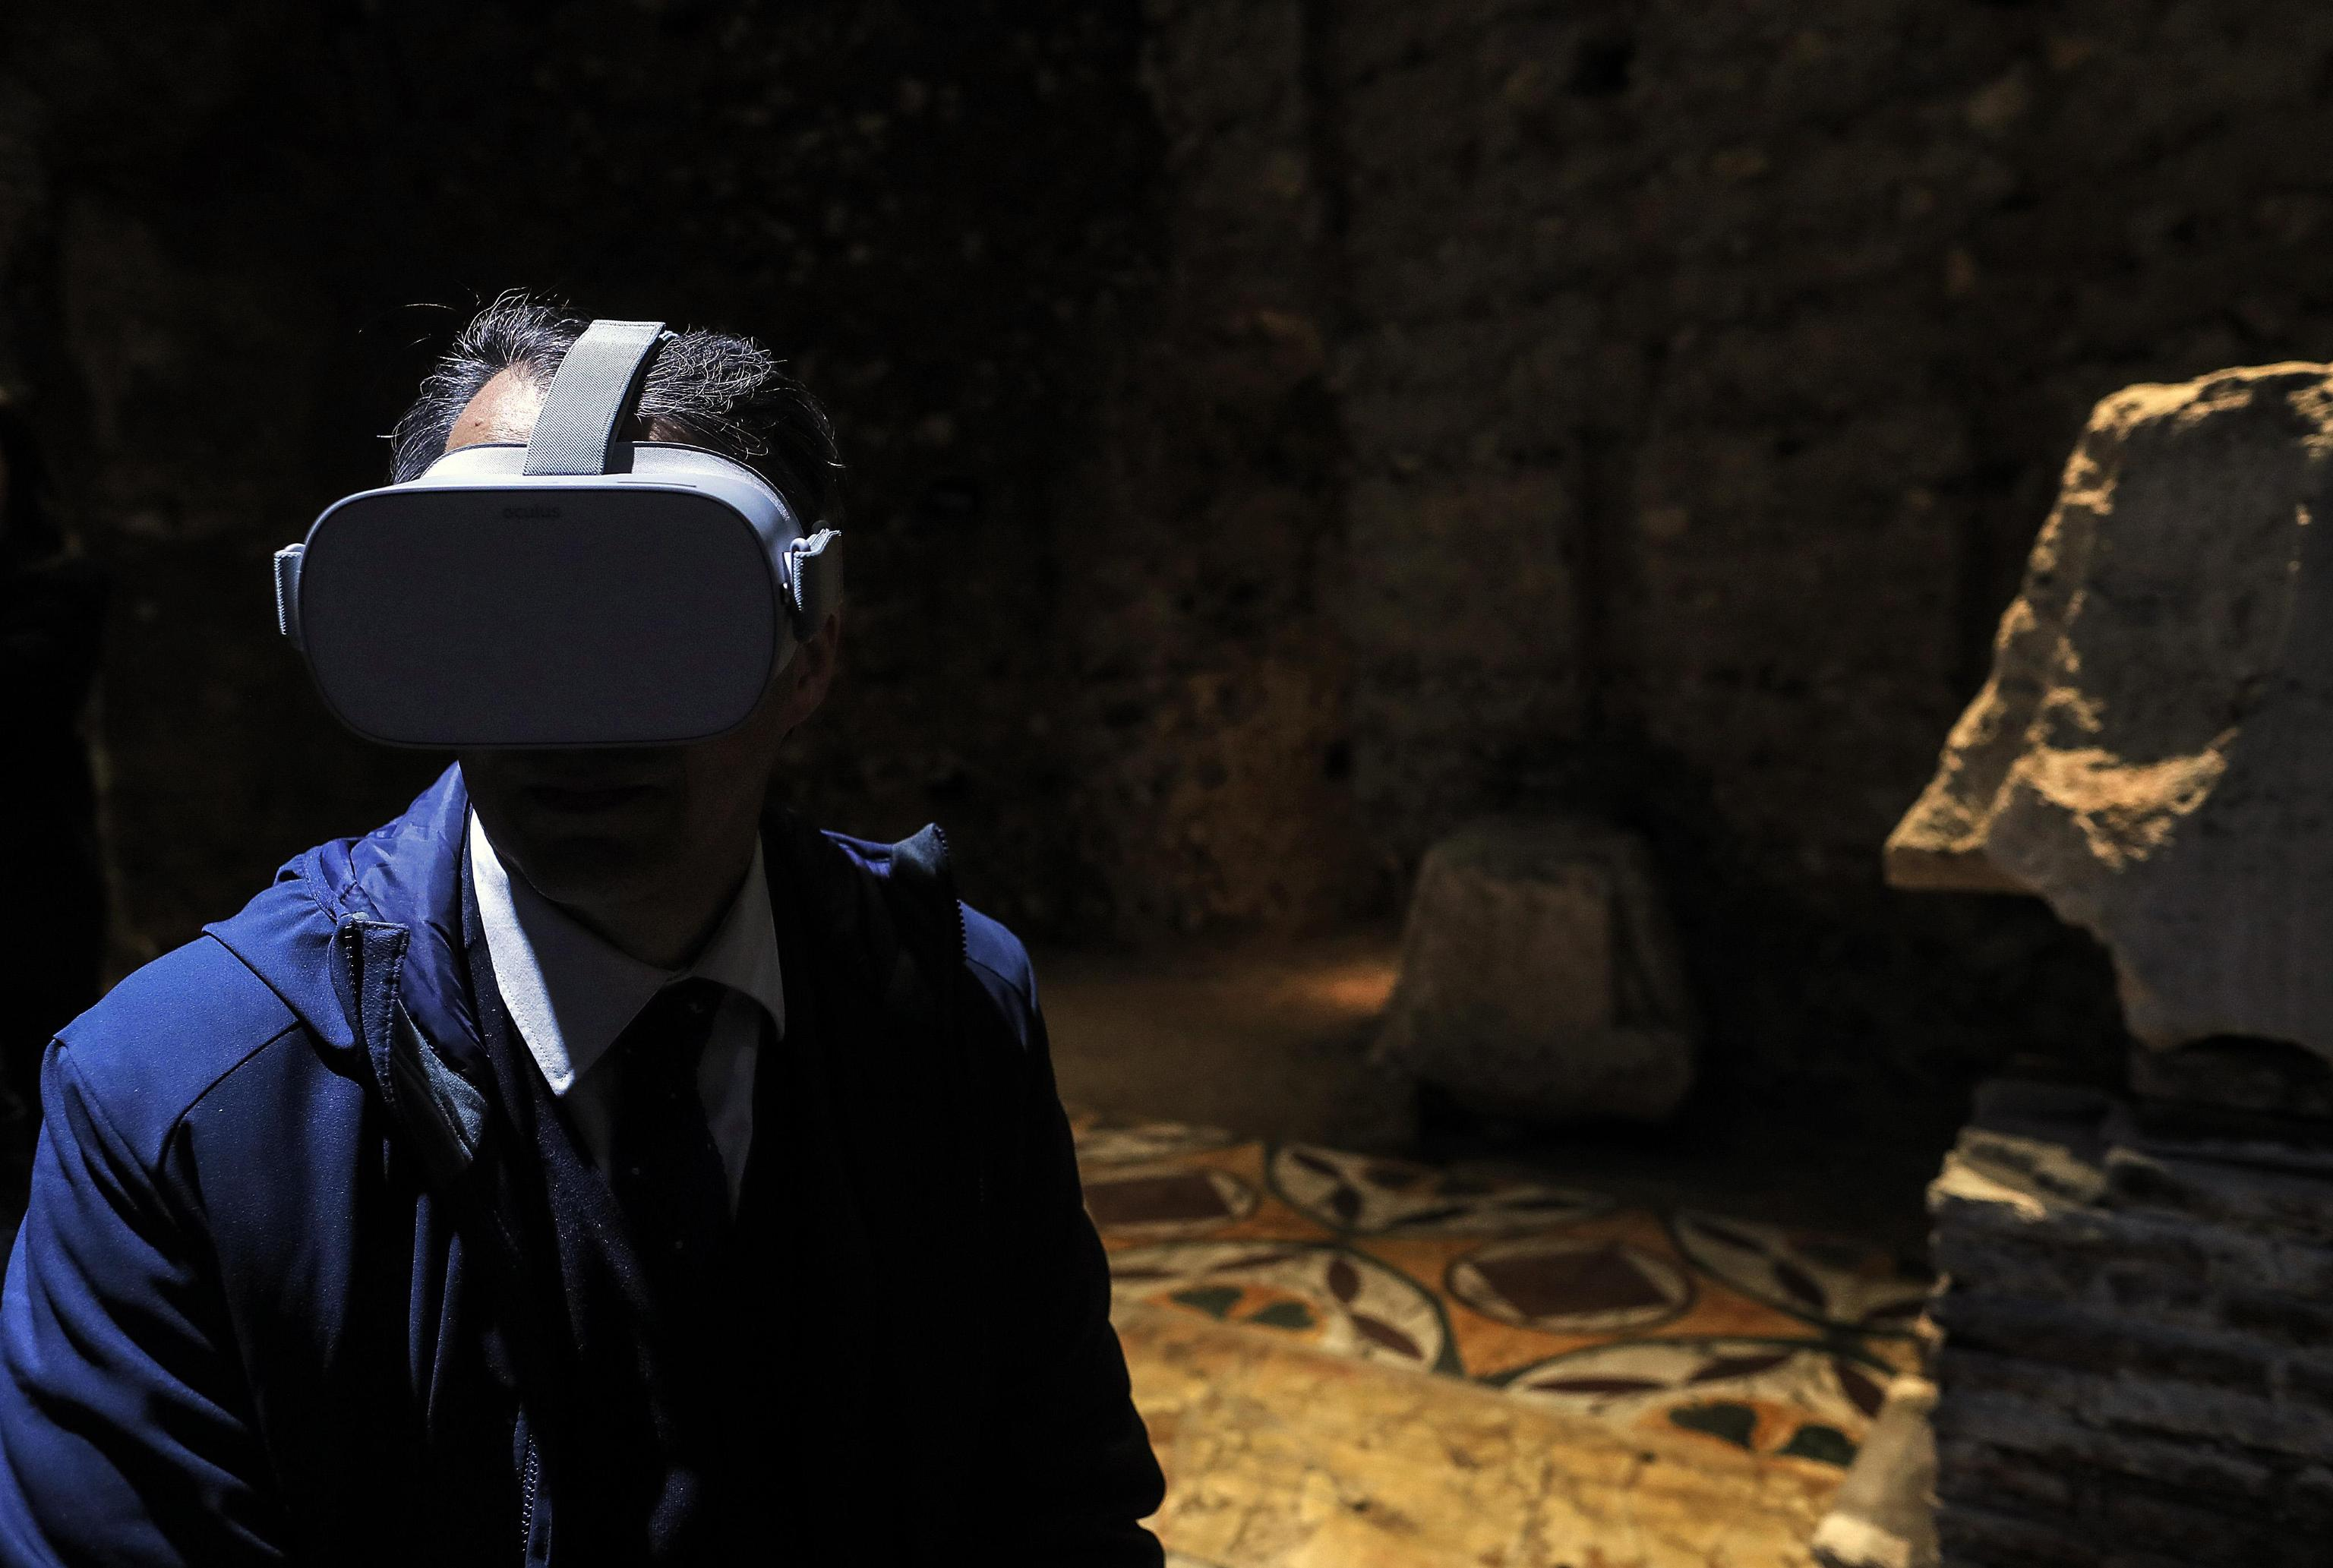 A visitor with a virtual reality viewer in one of the rooms in the 'Domus Transitoria', the first Nero's palace on the Palatine Hill, Colosseum Archeological Park, Rome, Italy, 11 April 2019. ANSA/RICCARDO ANTIMIANI